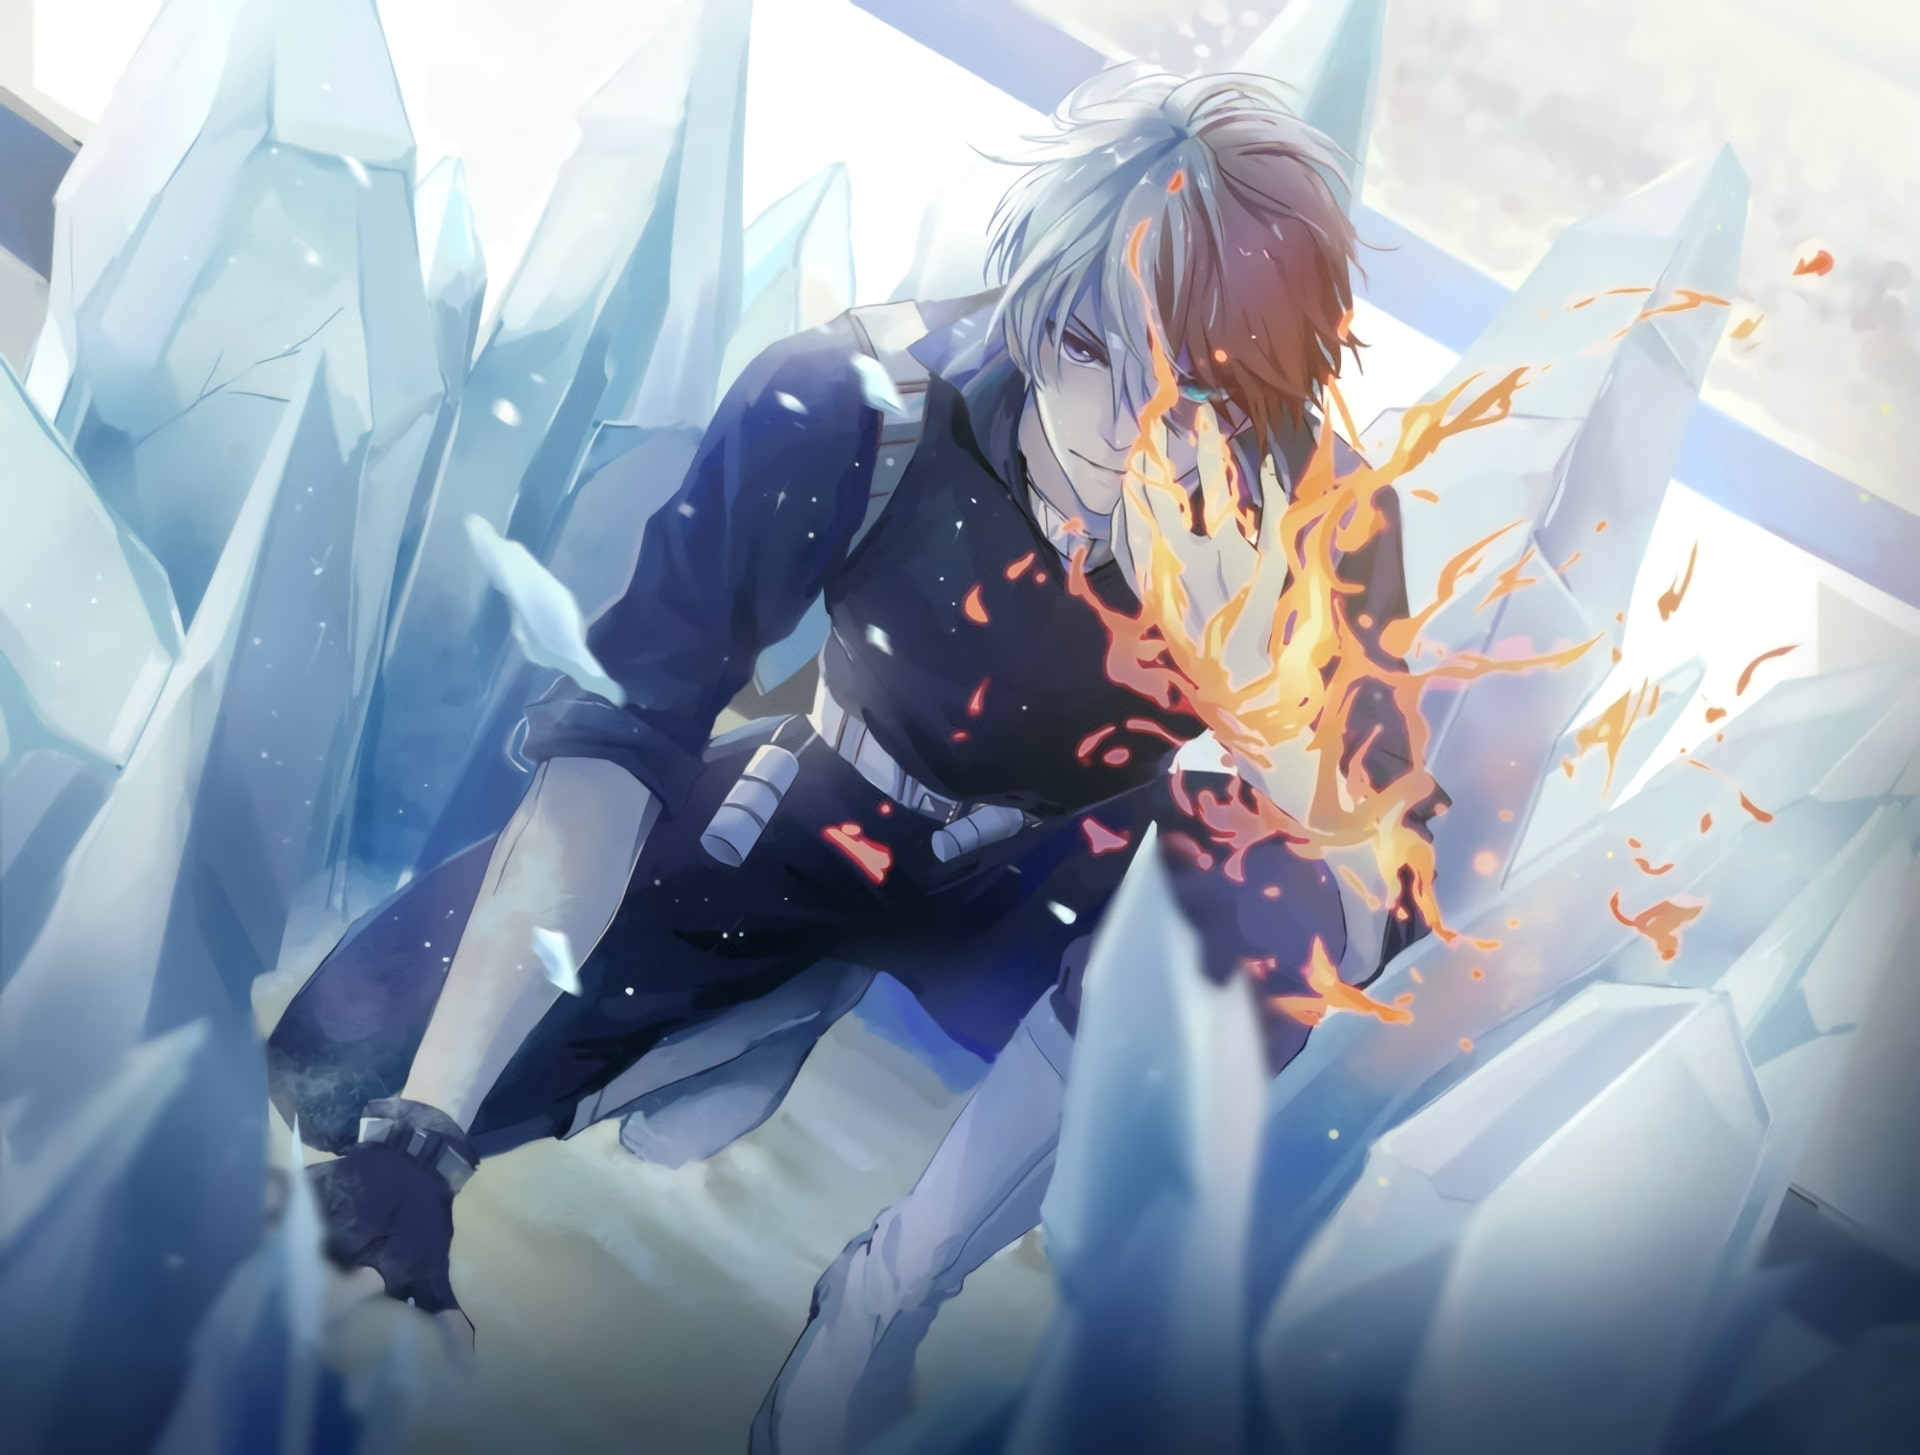 Wallpaper Of Anime My Hero Academia Shoto Todoroki Background